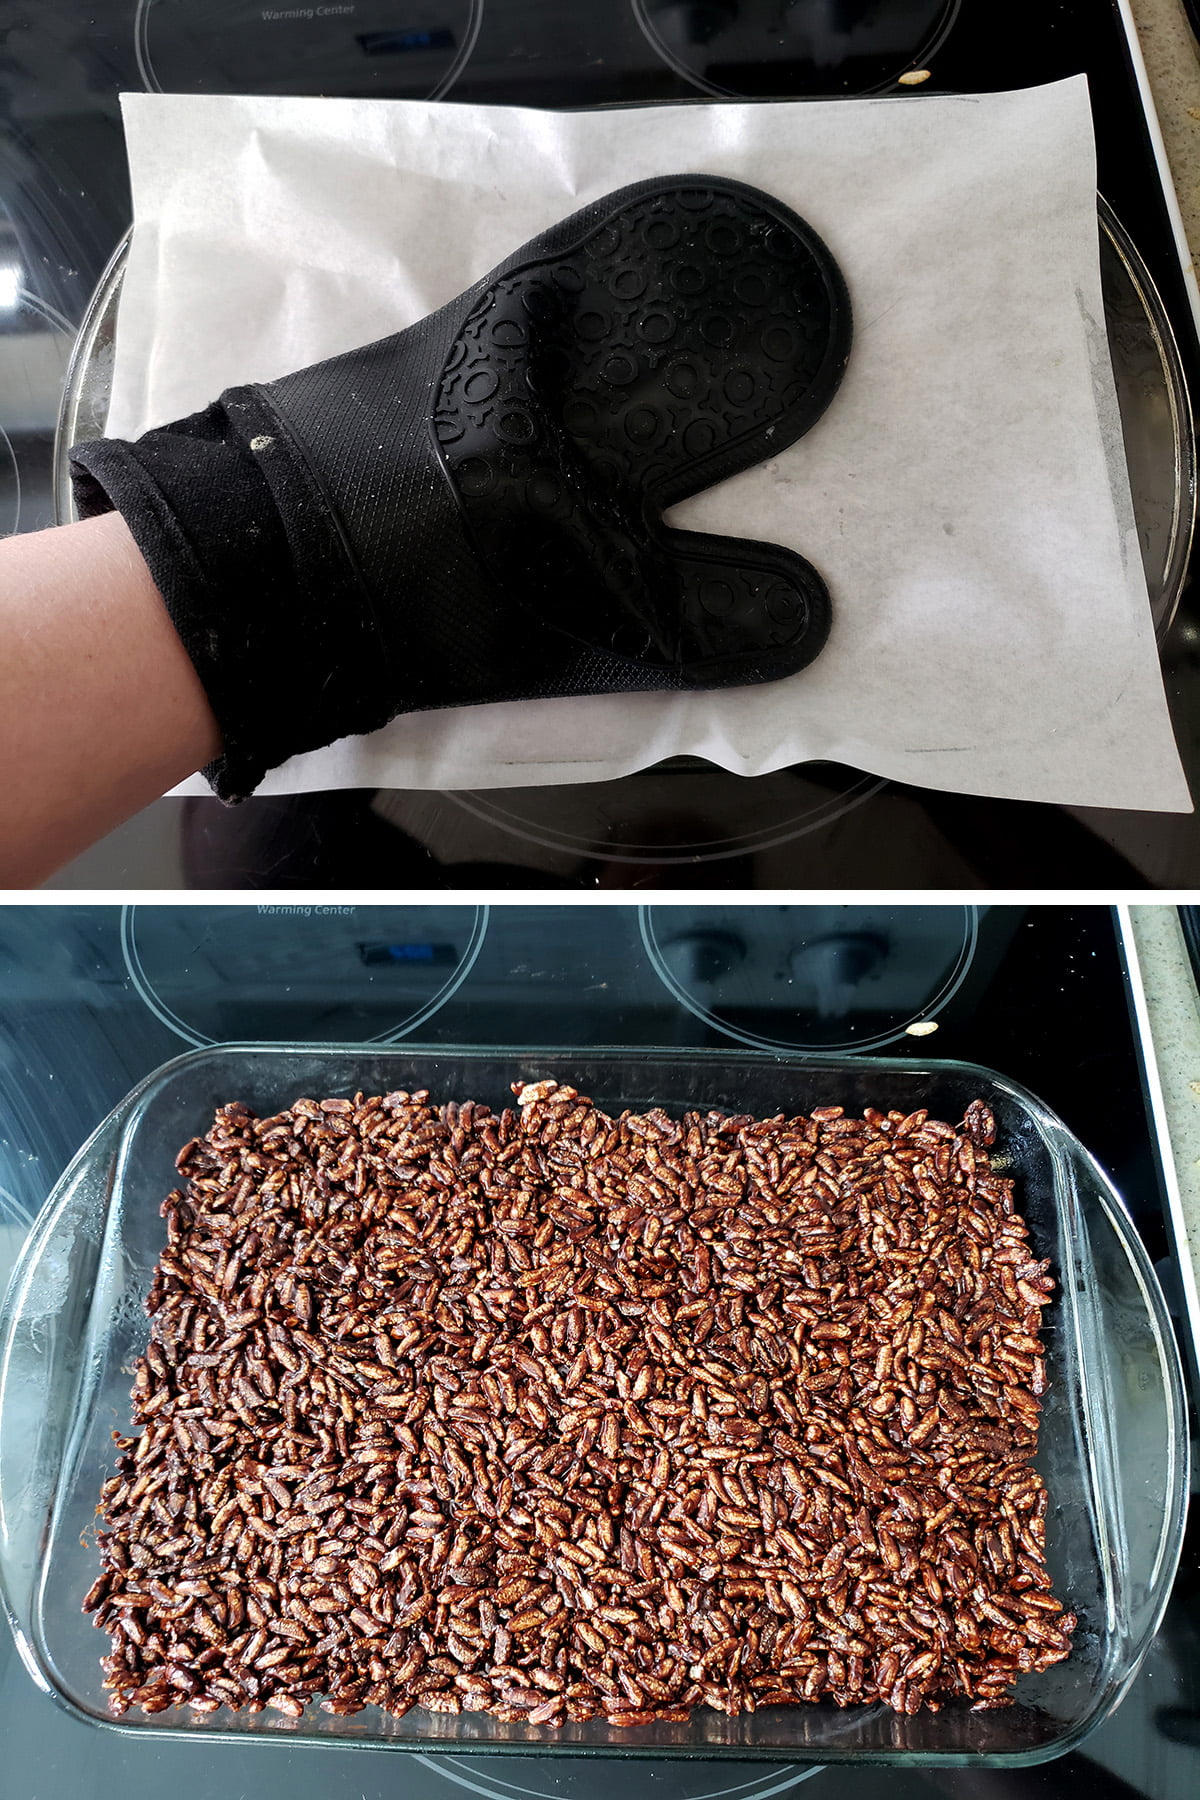 A two part image showing a hand in an oven mit pressing down on parchment paper, and the pressed pan of squares.